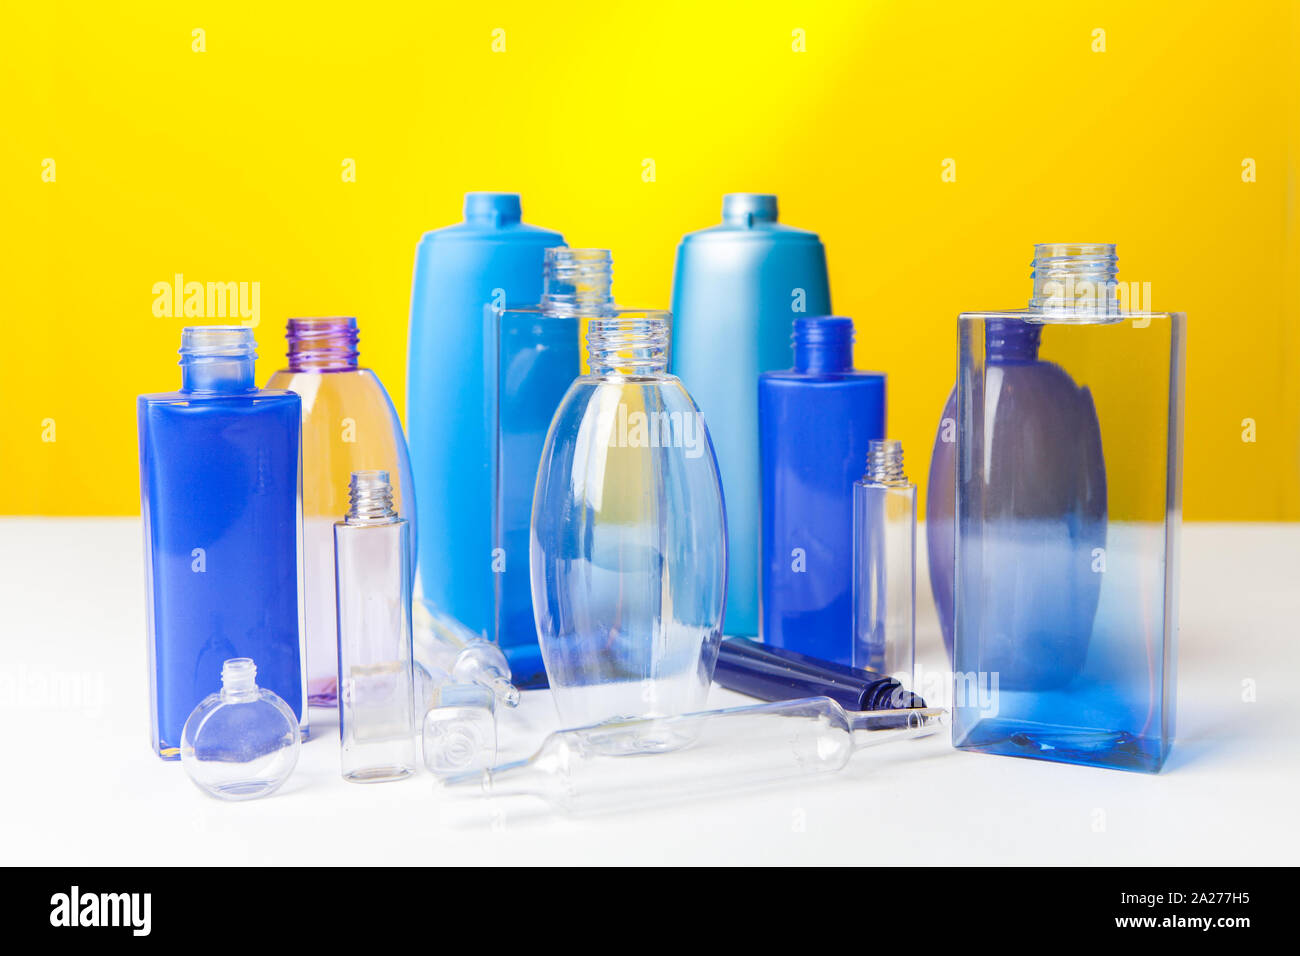 Group of empty plastic bottles, ampouls and vials,  of various sizes and colors. On yellow background Stock Photo